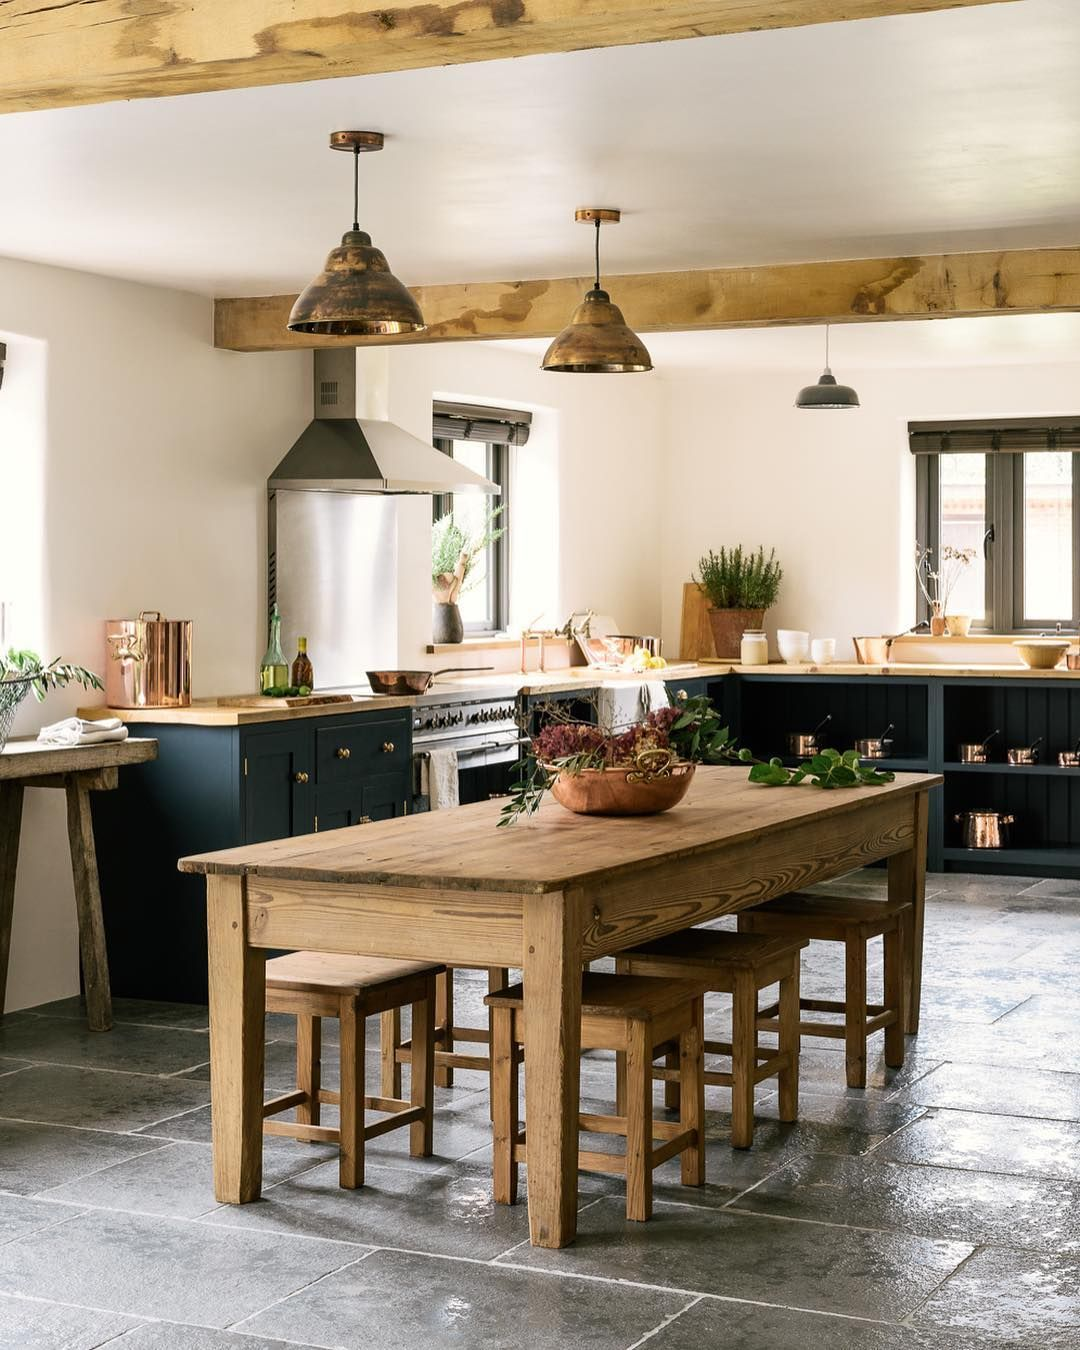 The Thing We Love Most About This Room Is The Achievability Of It It S Undeniably Beaut English Country Kitchens Shaker Style Kitchens Farmhouse Style Kitchen